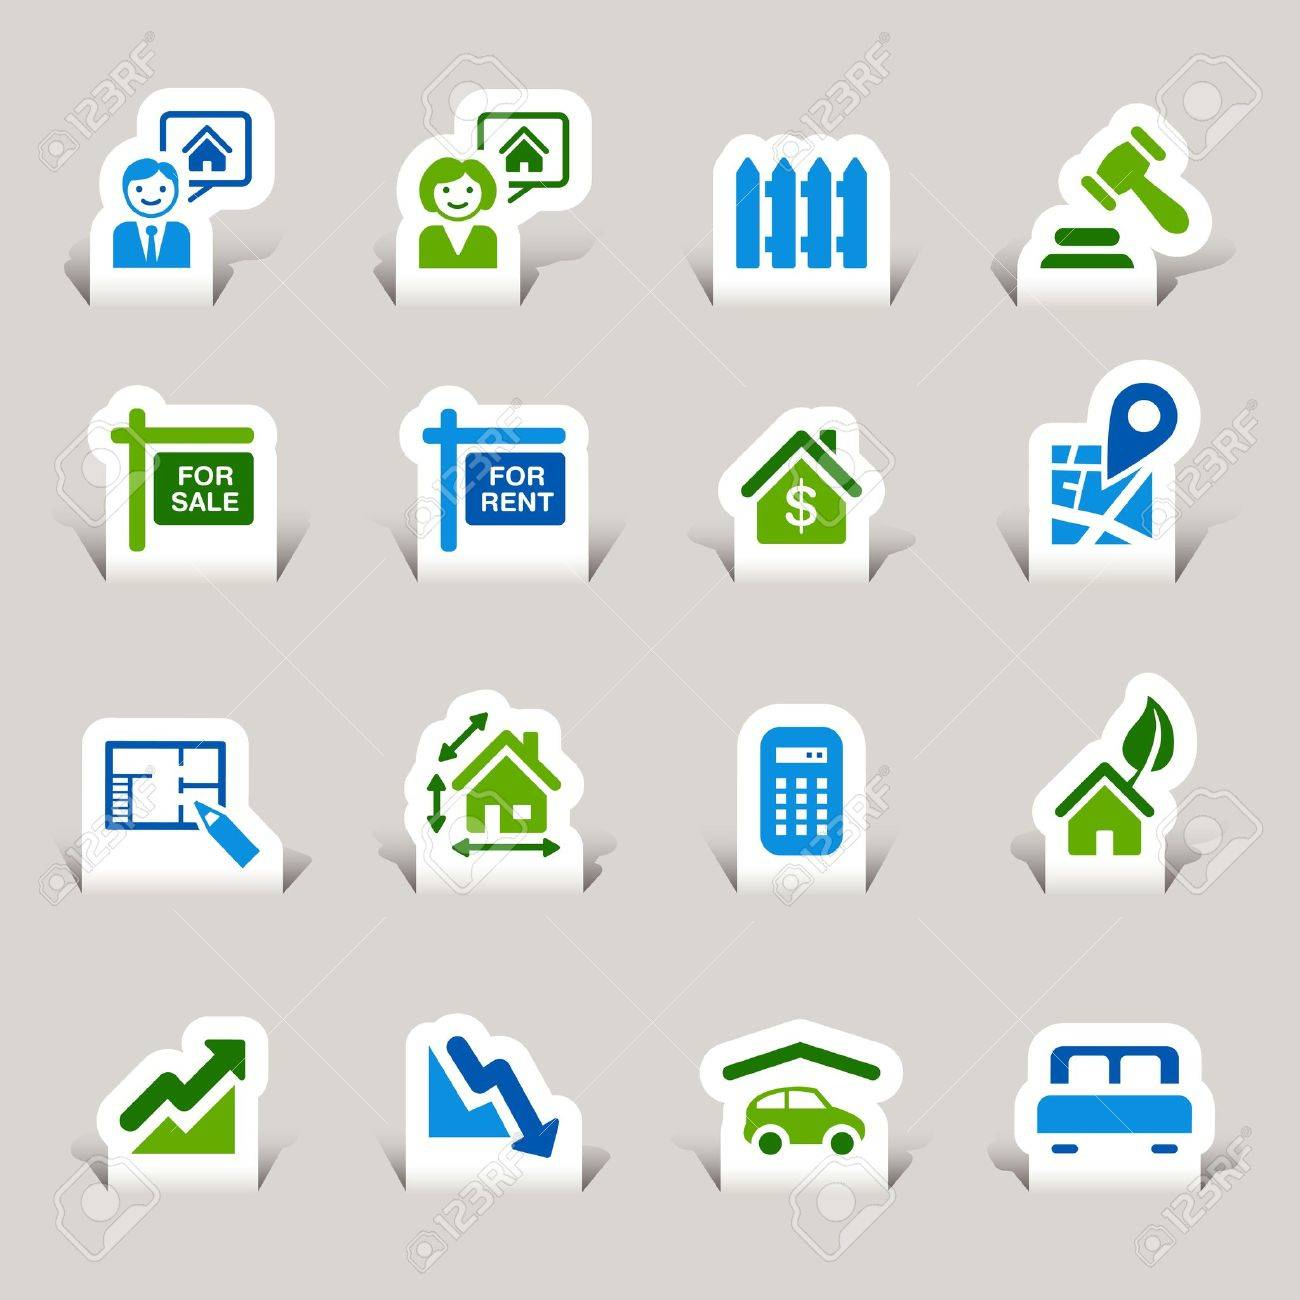 Paper Cut - Real estate icons Stock Vector - 12488300